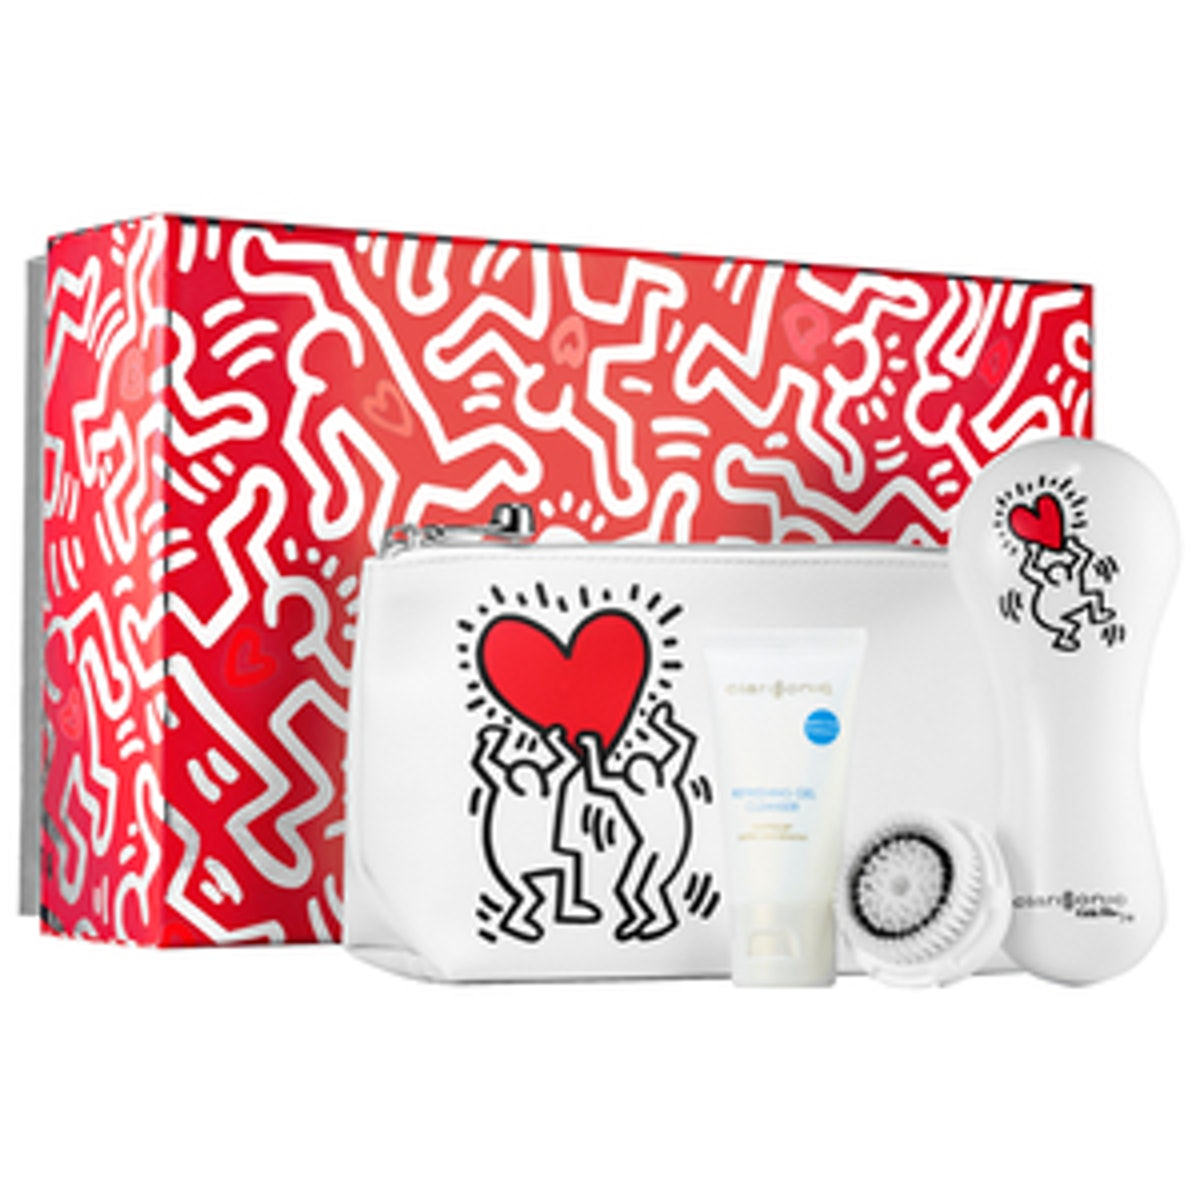 """Mia 2 Keith Haring """"Love"""" Skin Cleansing System"""